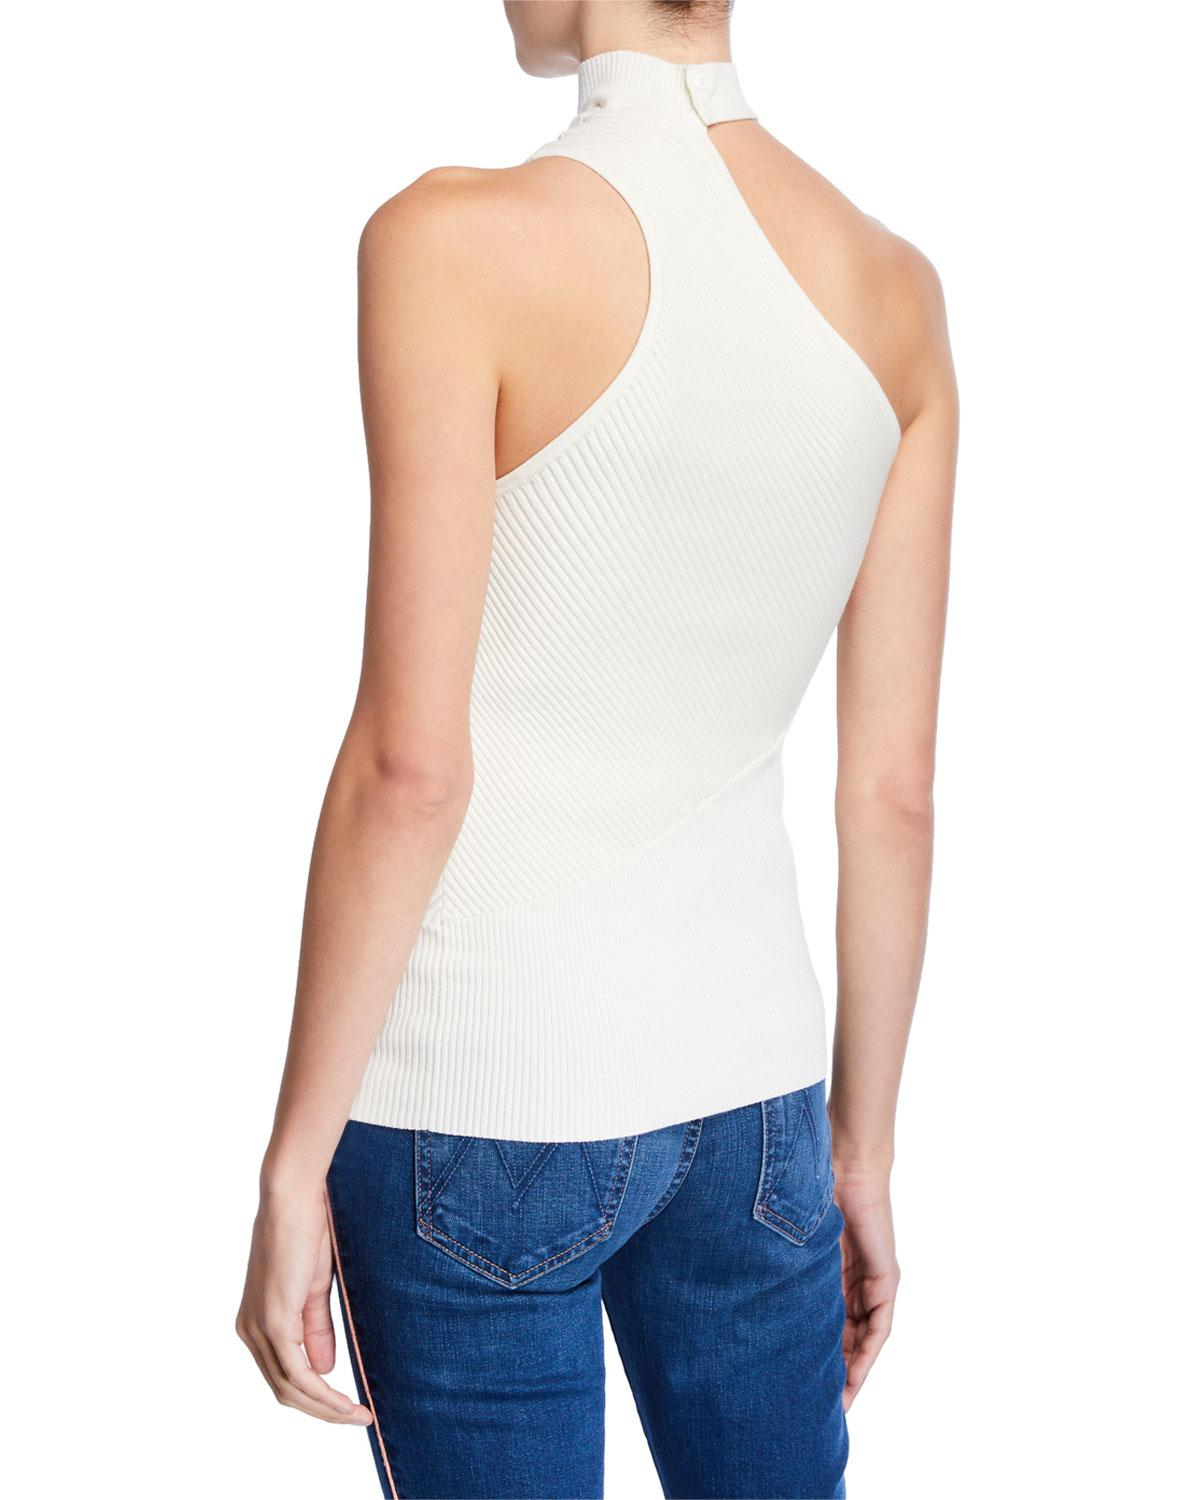 09a708d07ebf4 Lyst - Ramy Brook Portia One-shoulder Mock-neck Sleeveless Top in White